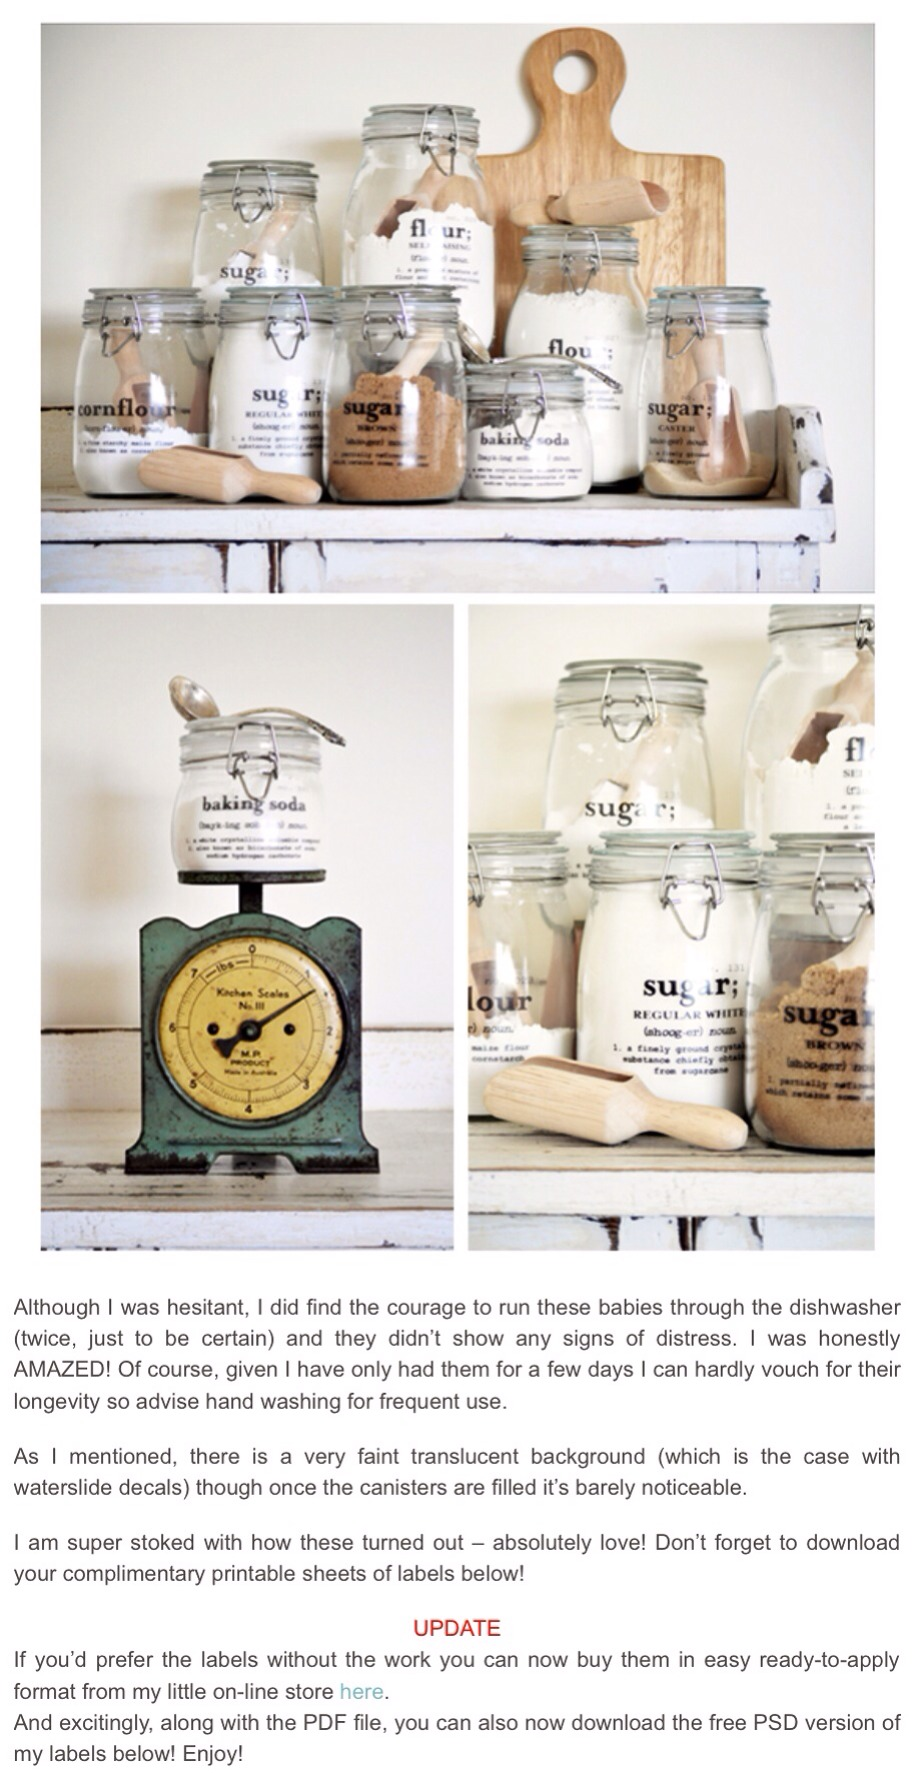 Link to store:                                          Ready to use labels/Pantry canister labels:  ✨http://thepaintedhive.net/shop-pantry-canister-labels/